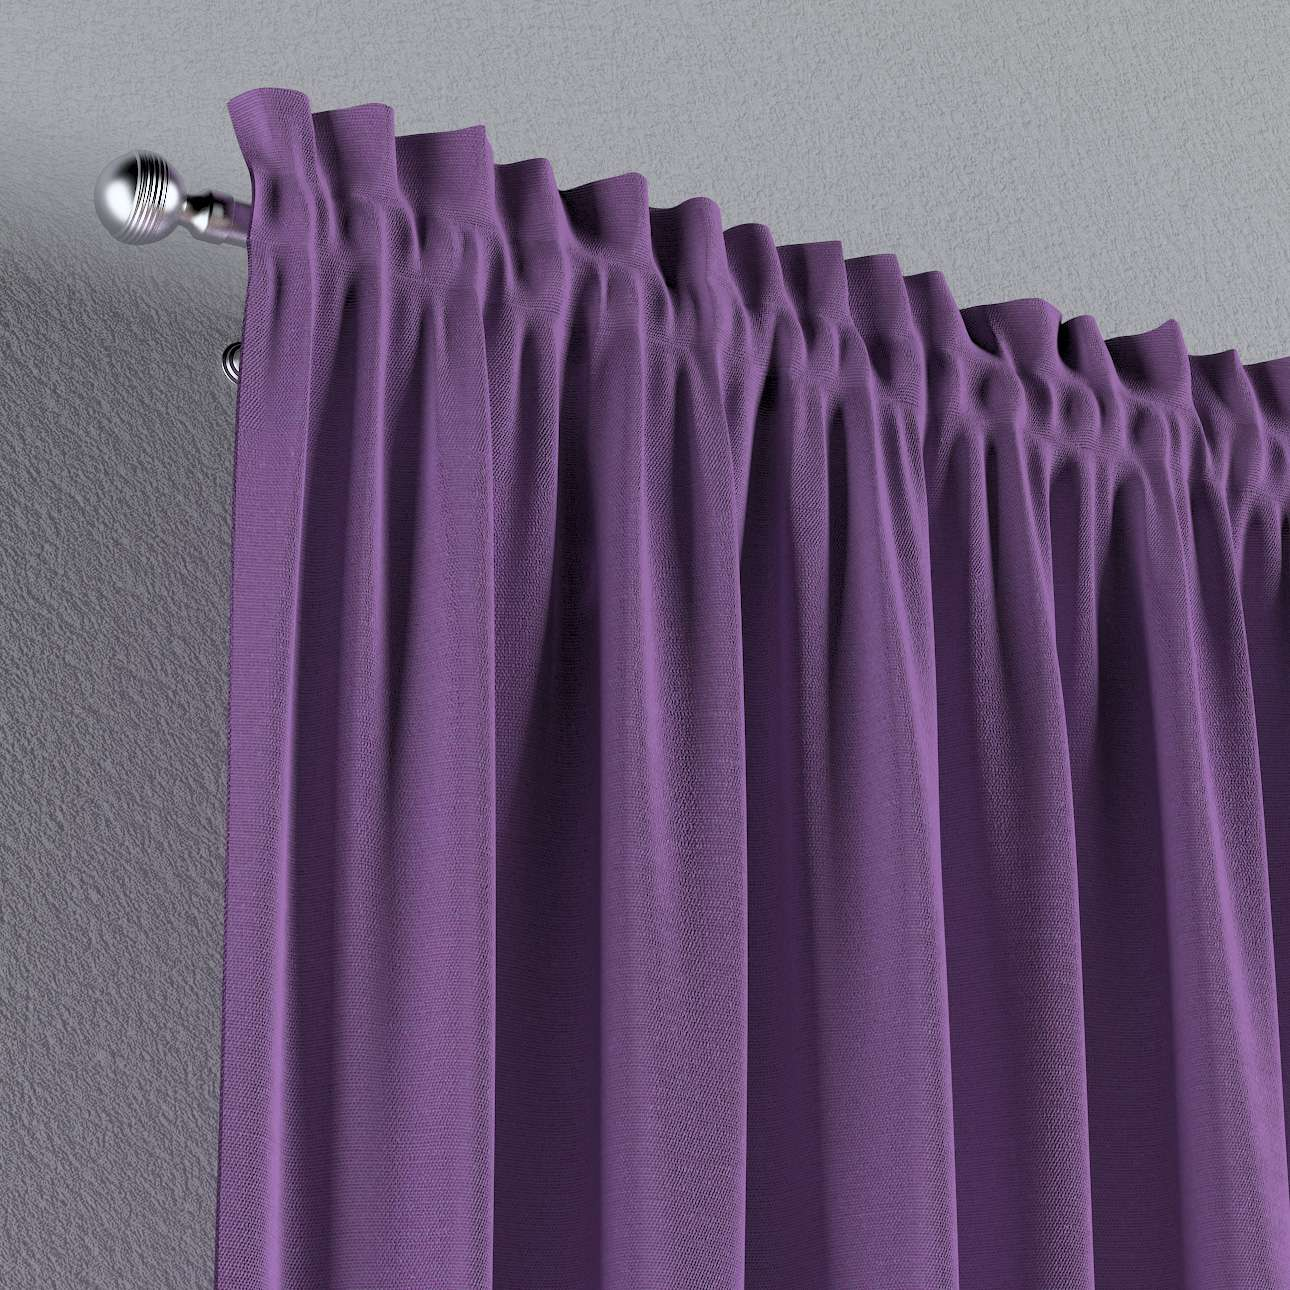 Slot and frill curtains 130 x 260 cm (51 x 102 inch) in collection Loneta , fabric: 133-19